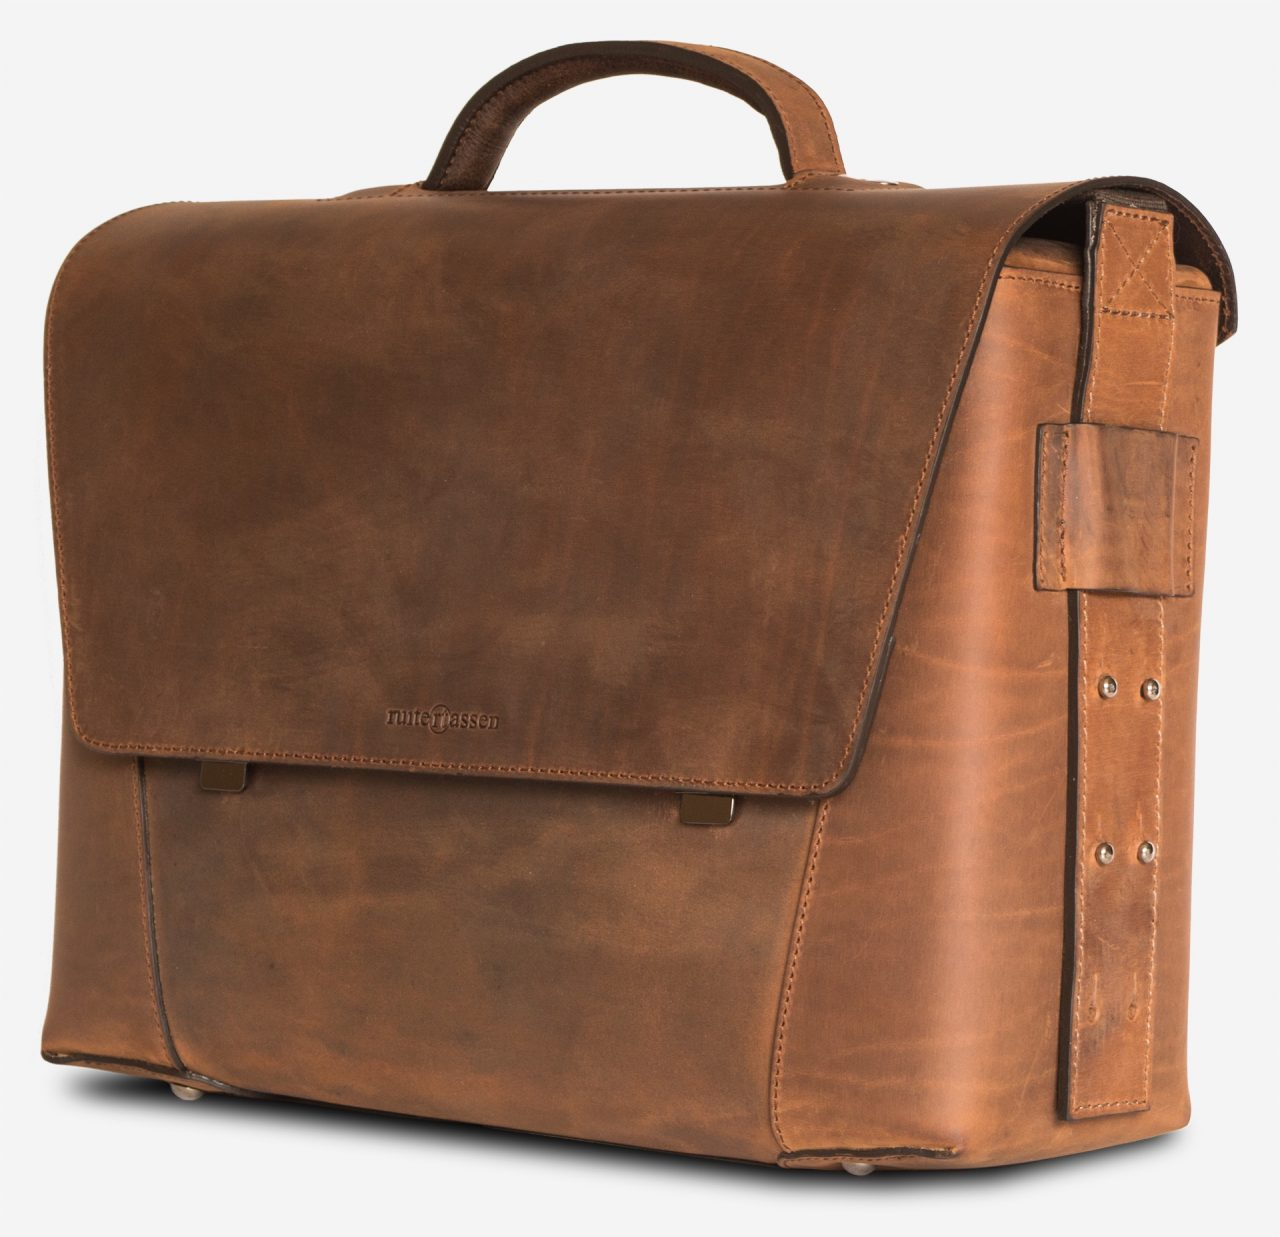 Side view of the large vegetable-tanned brown leather briefcase bag with laptop pocket.